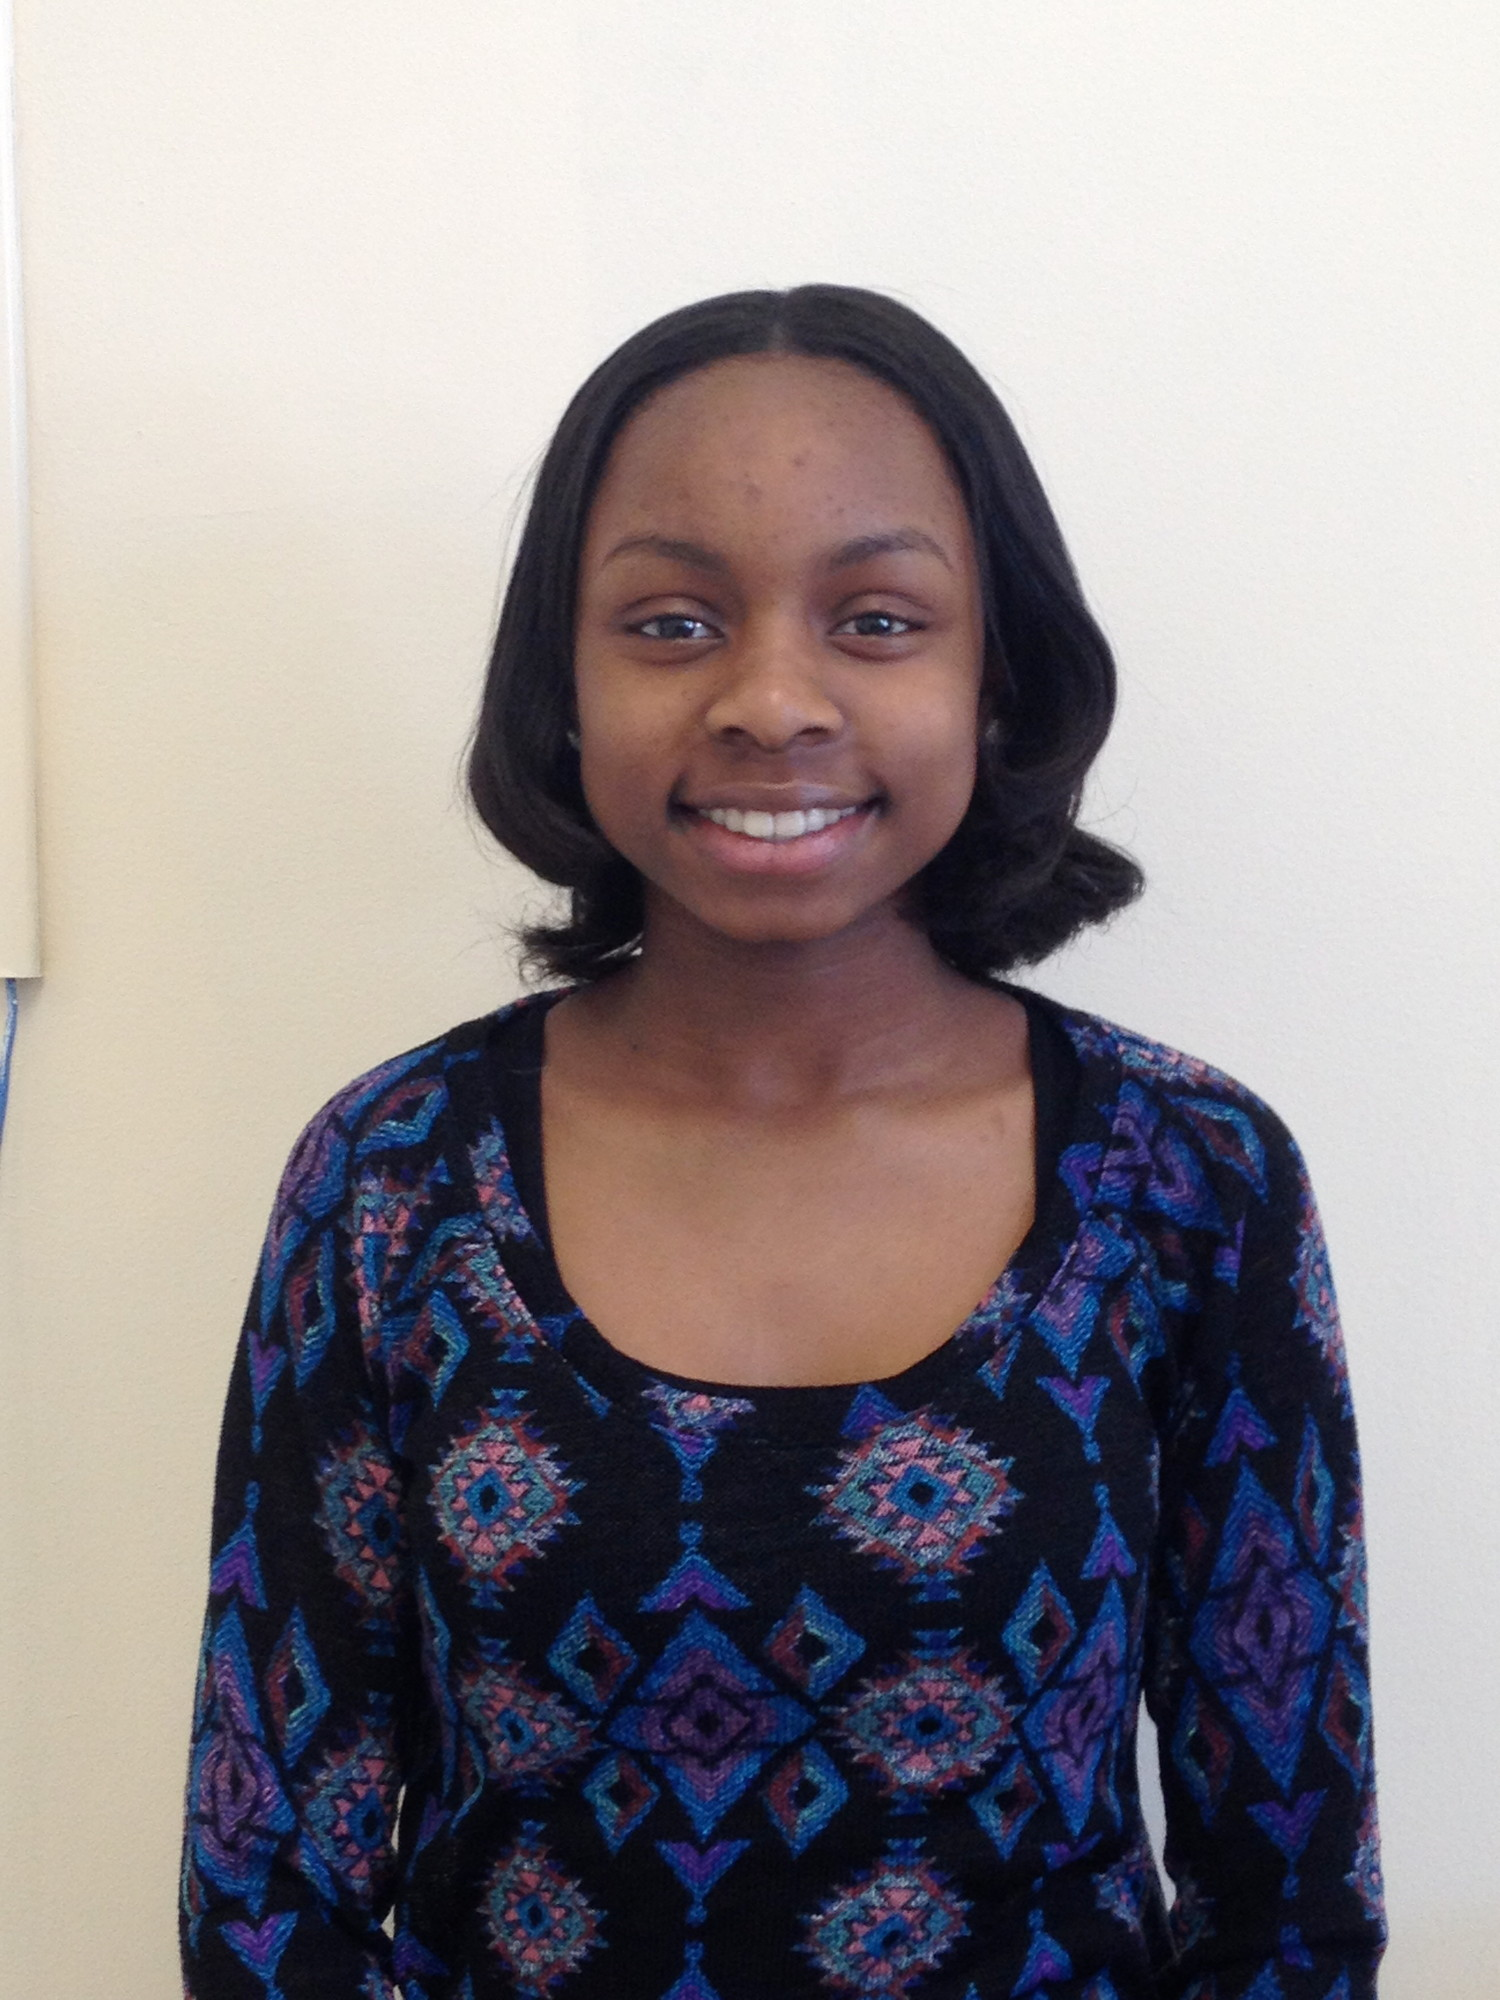 "The Malverne School District congratulated Dennise Gregory on being a published writer after her poem ""I Am Intelligent and Unique in My Own Way"" was featured in the international publication ""Creative Communications."""